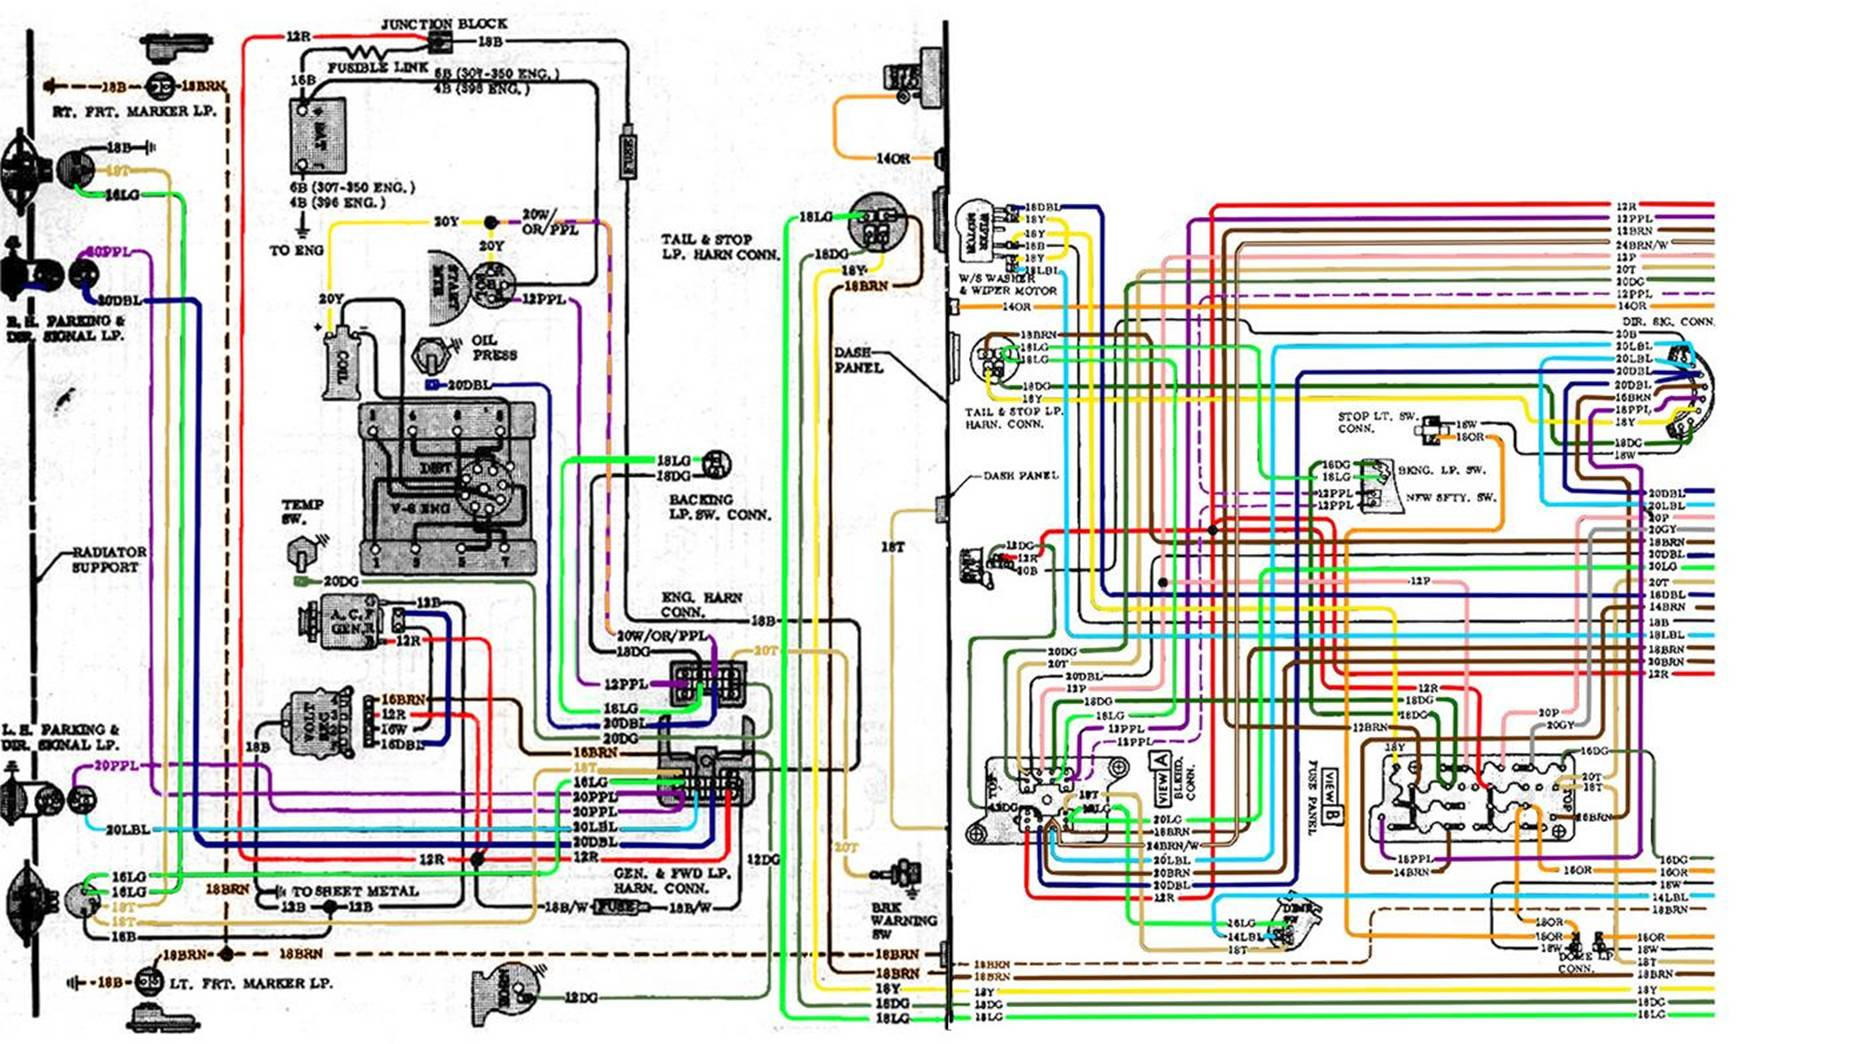 hight resolution of 72 blazer wiring diagram blog wiring diagram72 chevy blazer wiring diagram for diagram data schema 72